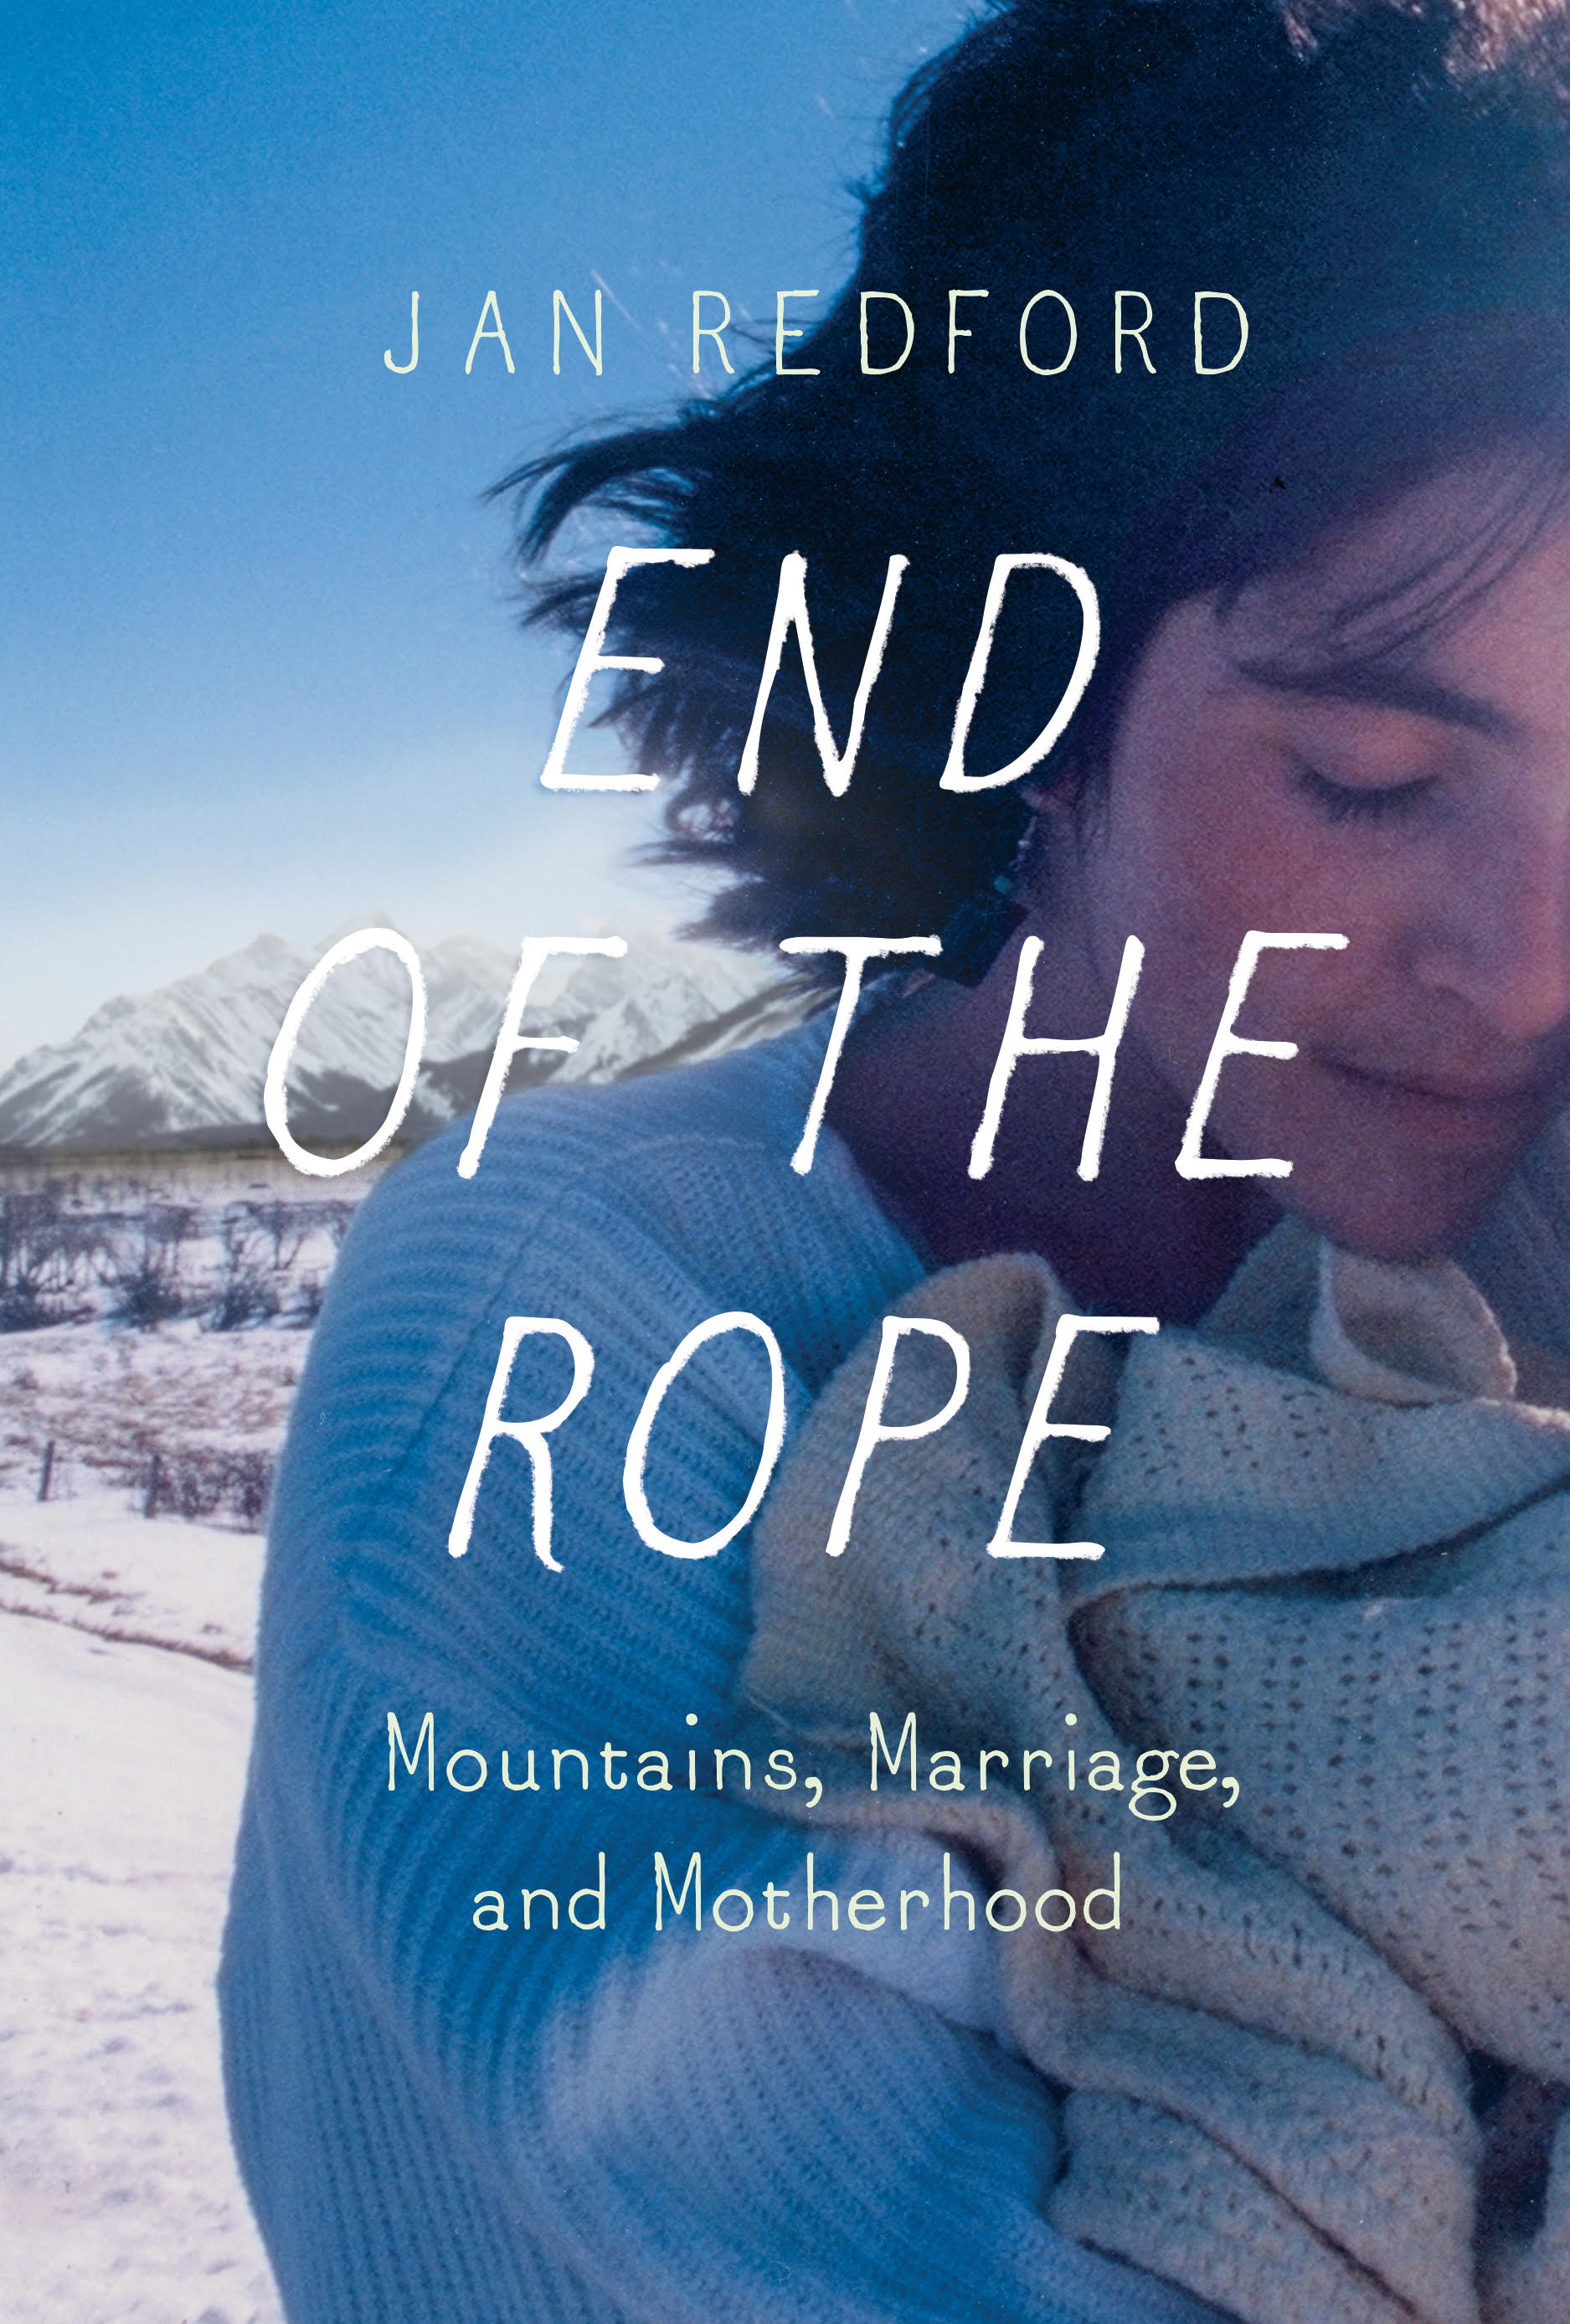 The Canadian cover for End of the Rope: Mountains, Marriage, and Motherhood by Jan Redford. Counterpoint Press, 2018.